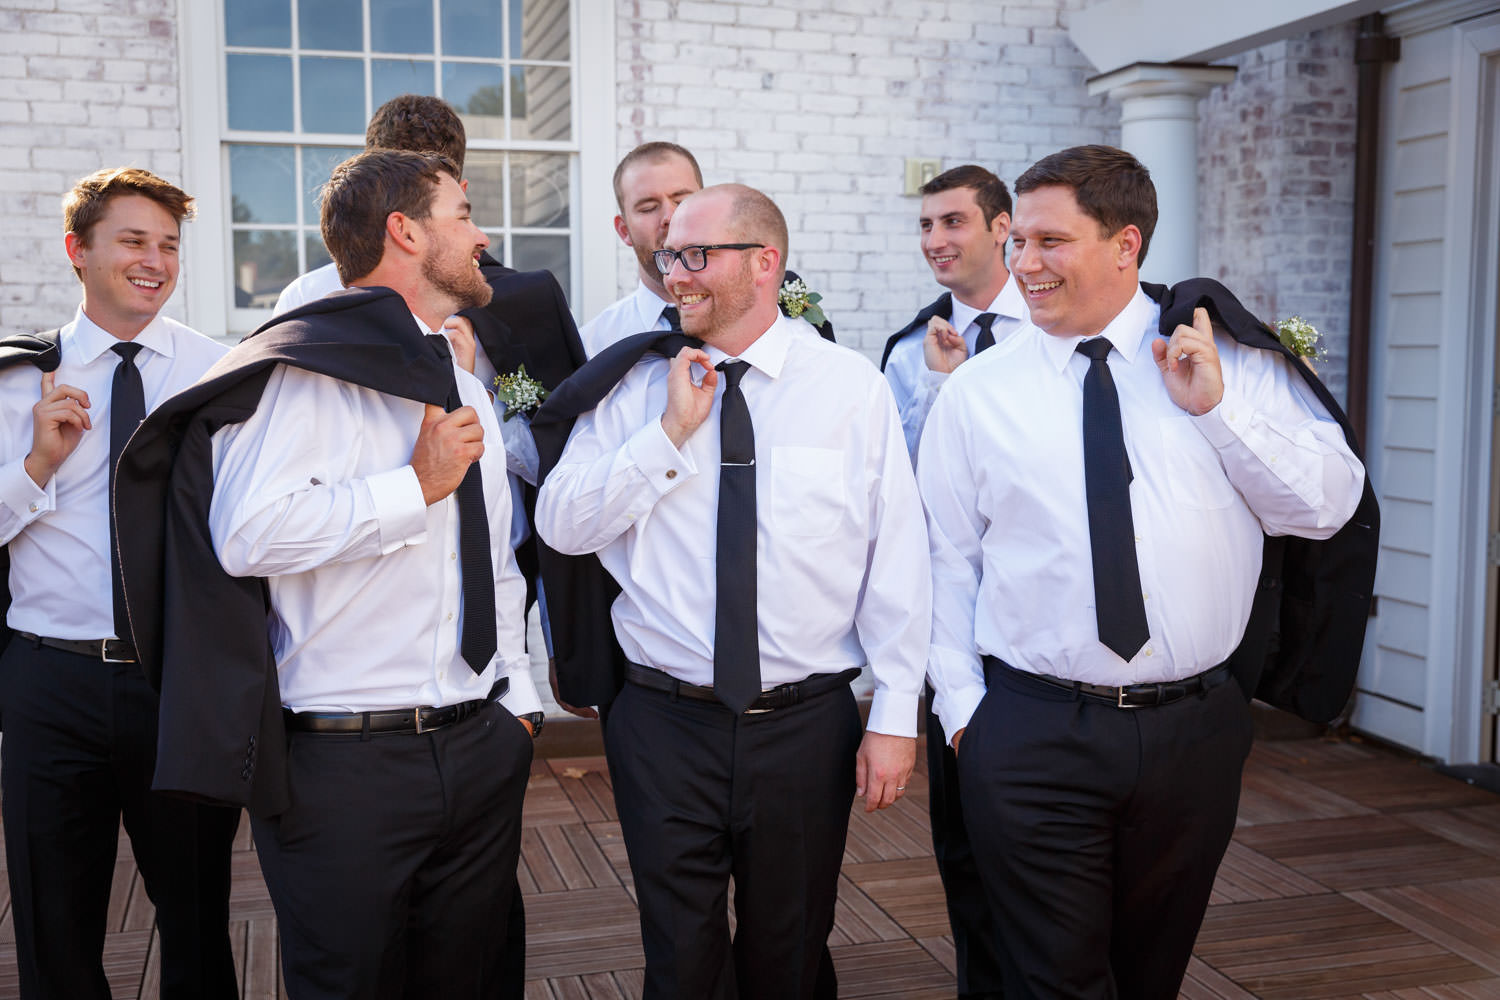 Groom and groomsmen walking with suit jacket over